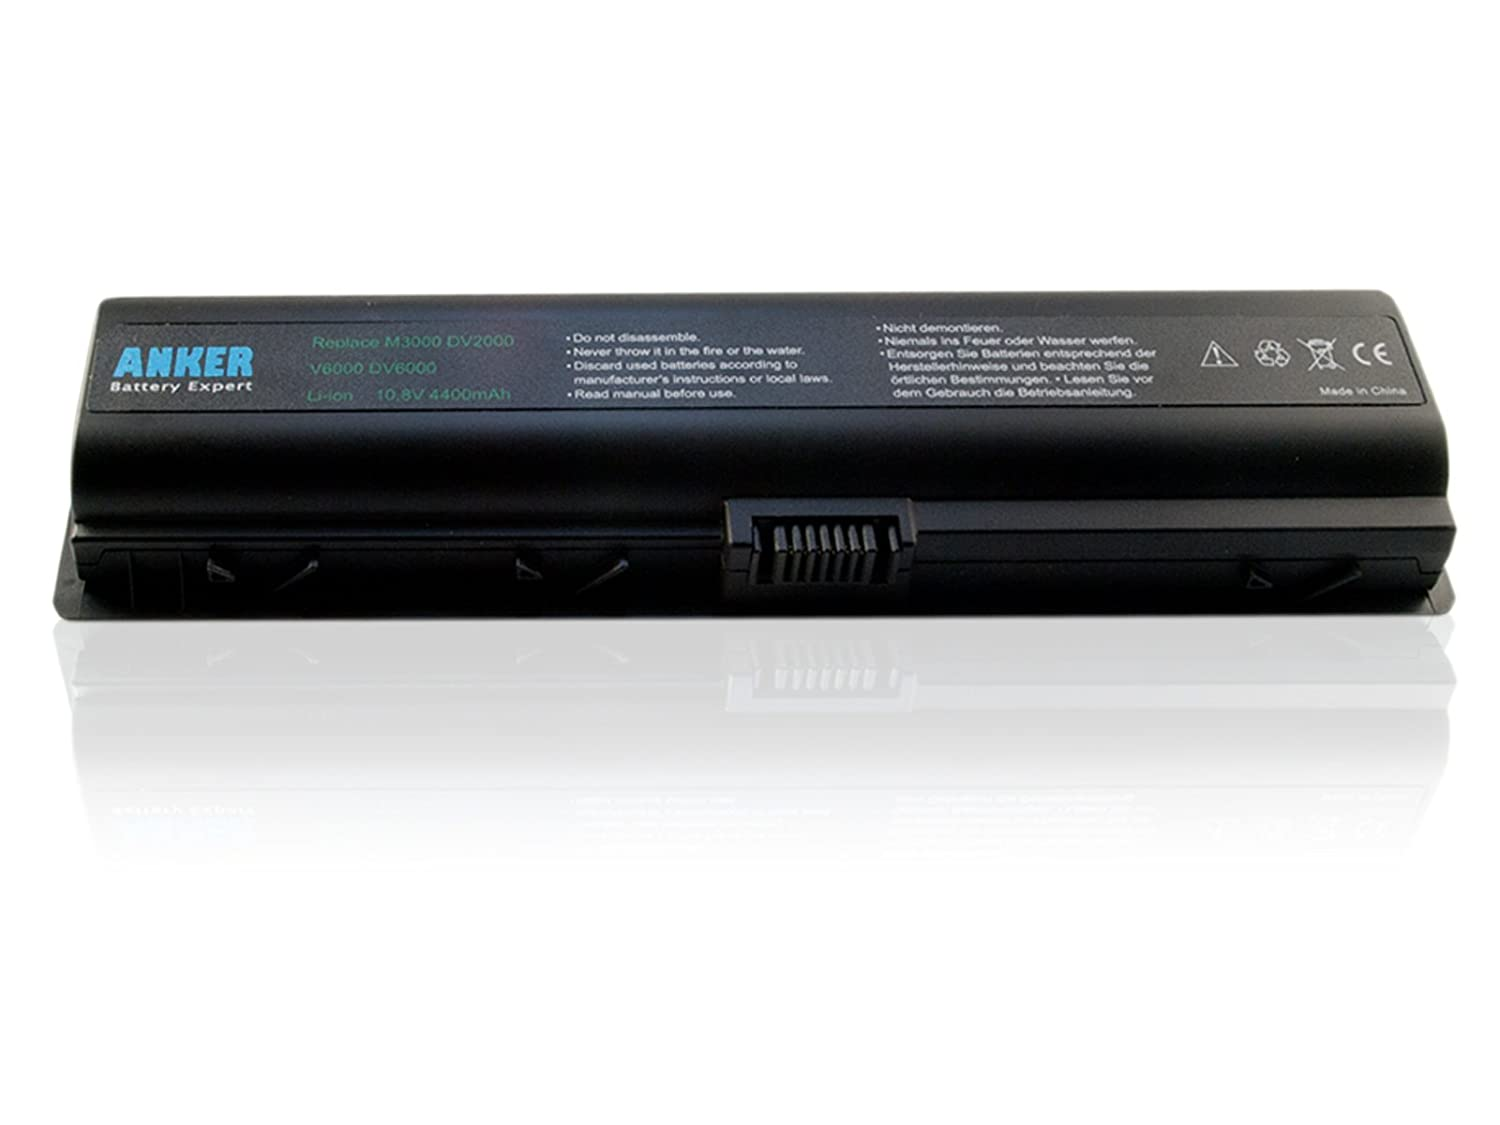 Amazon.com: Anker® New Laptop Battery for HP Presario A900 A910 C700 C714nr  C769us F500 F557us F558us F560 F572us F577 F577Cl F579wm F588 F700 F730  F735 ...